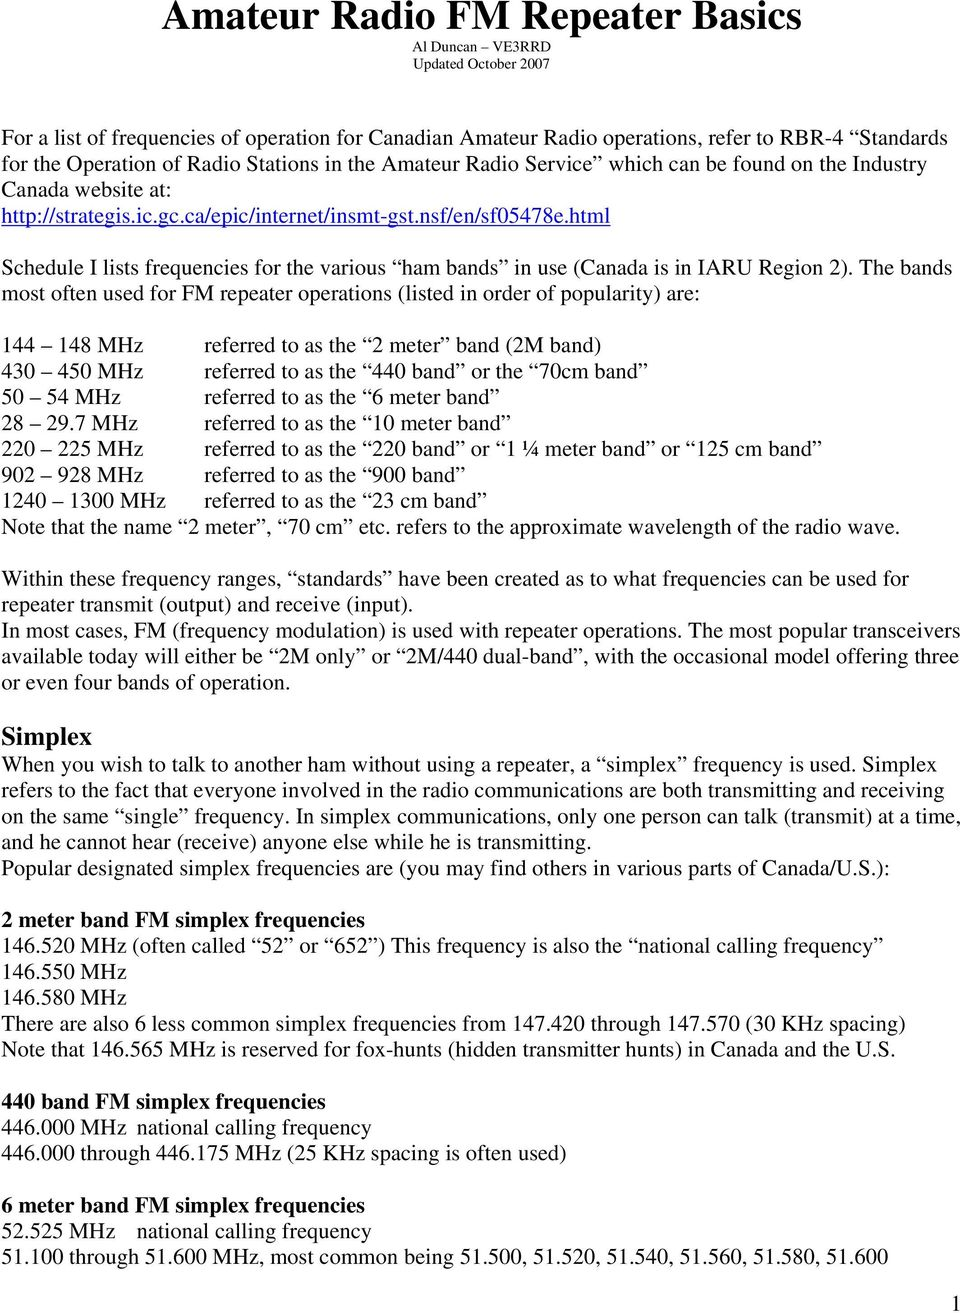 Amateur Radio Fm Repeater Basics Al Duncan Ve3rrd Updated October Pdf Frequency Theory Diagram Modulation National Html Schedule I Lists Frequencies For The Various Ham Bands In Use Canada Is